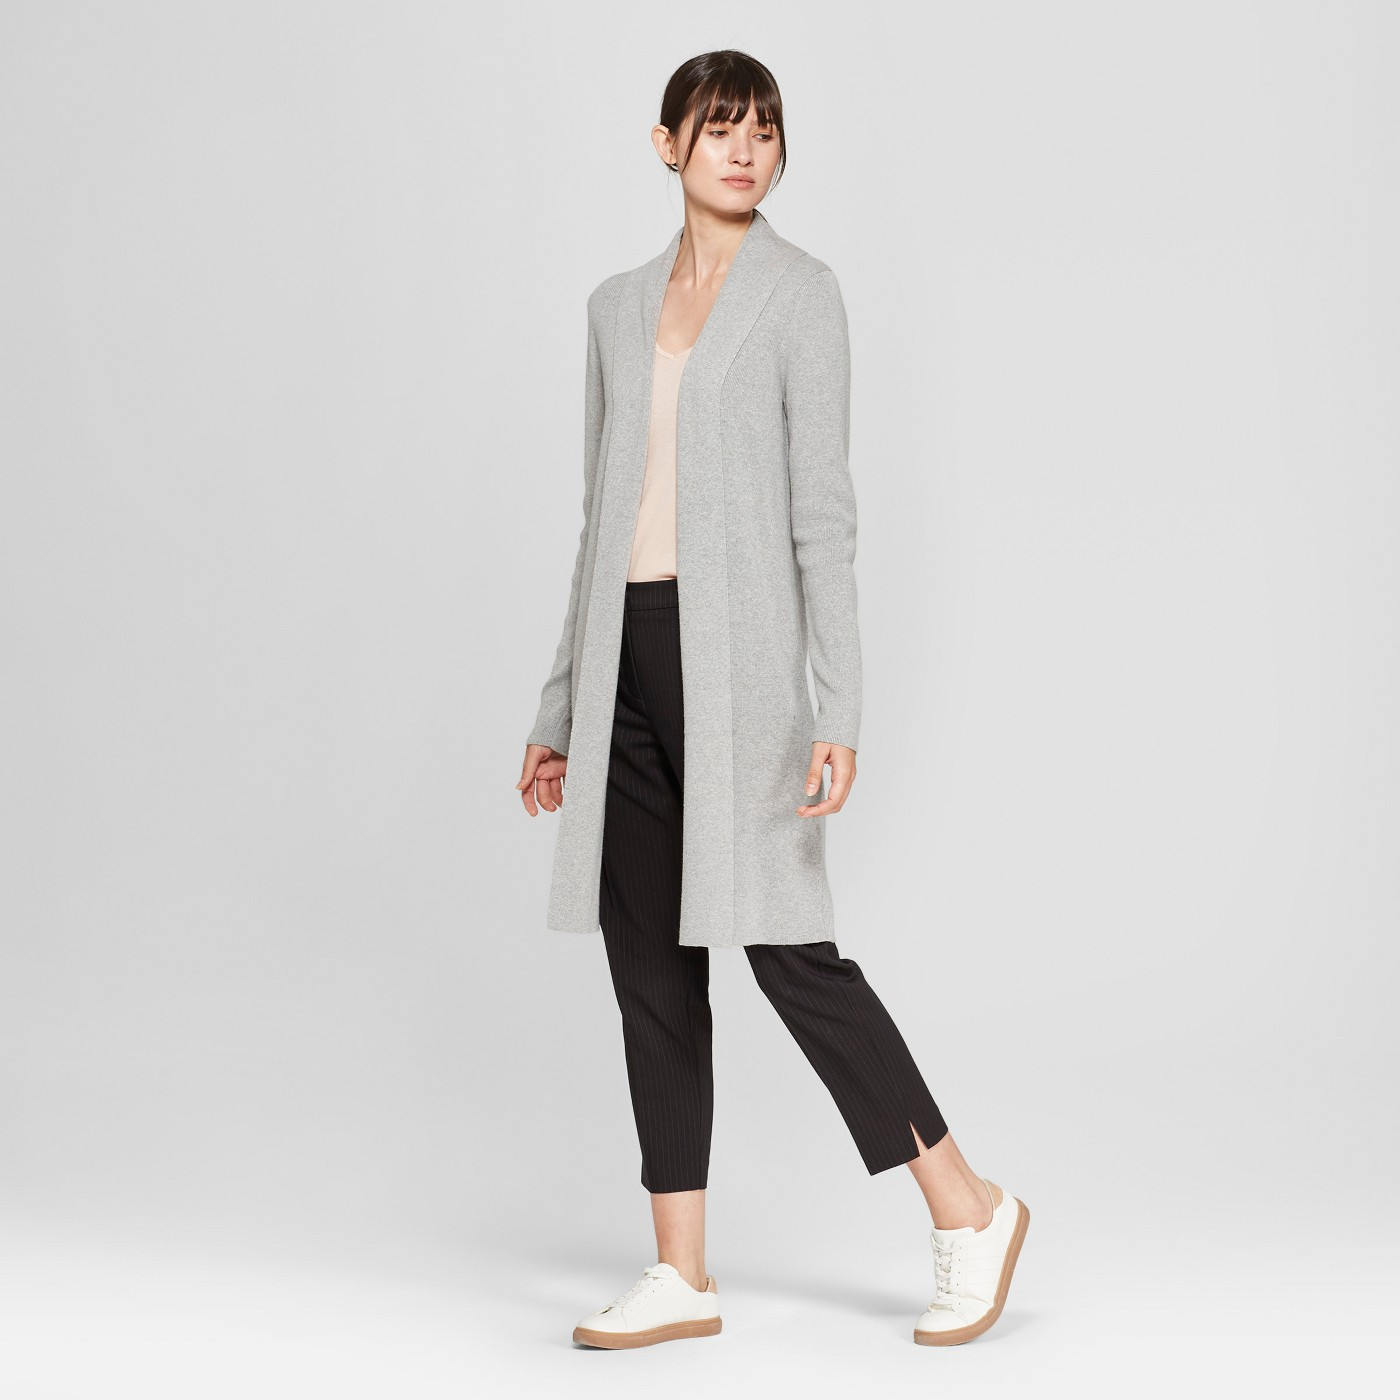 Women's Long Sleeve Cardigan - Prologue™ - image 1 of 3